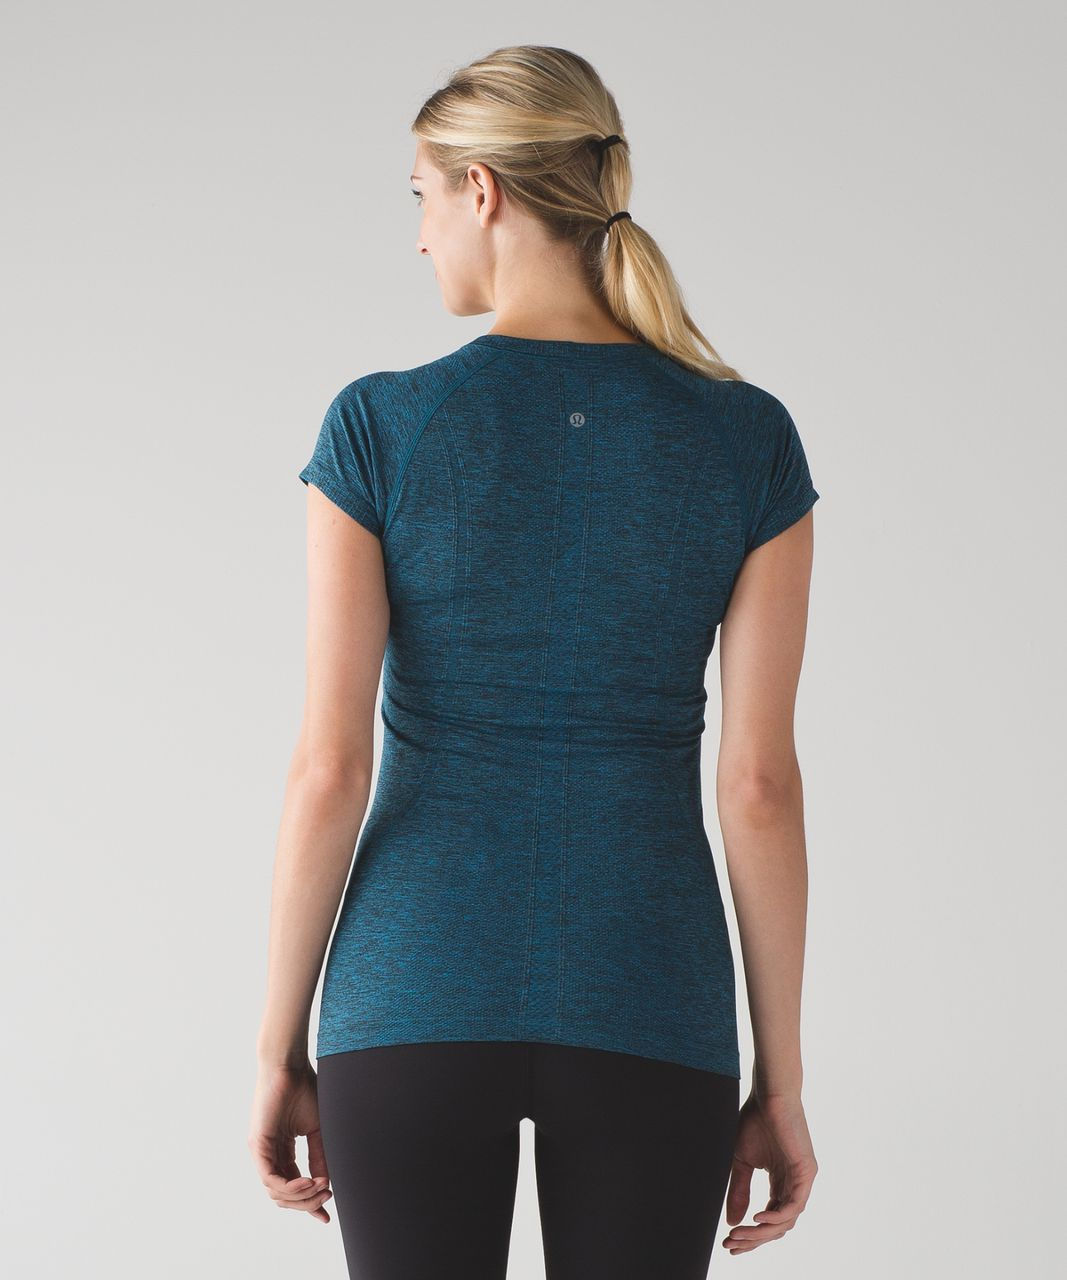 lululemon-swiftly-tech-short-sleeve-crew-capri-black-028292-33563